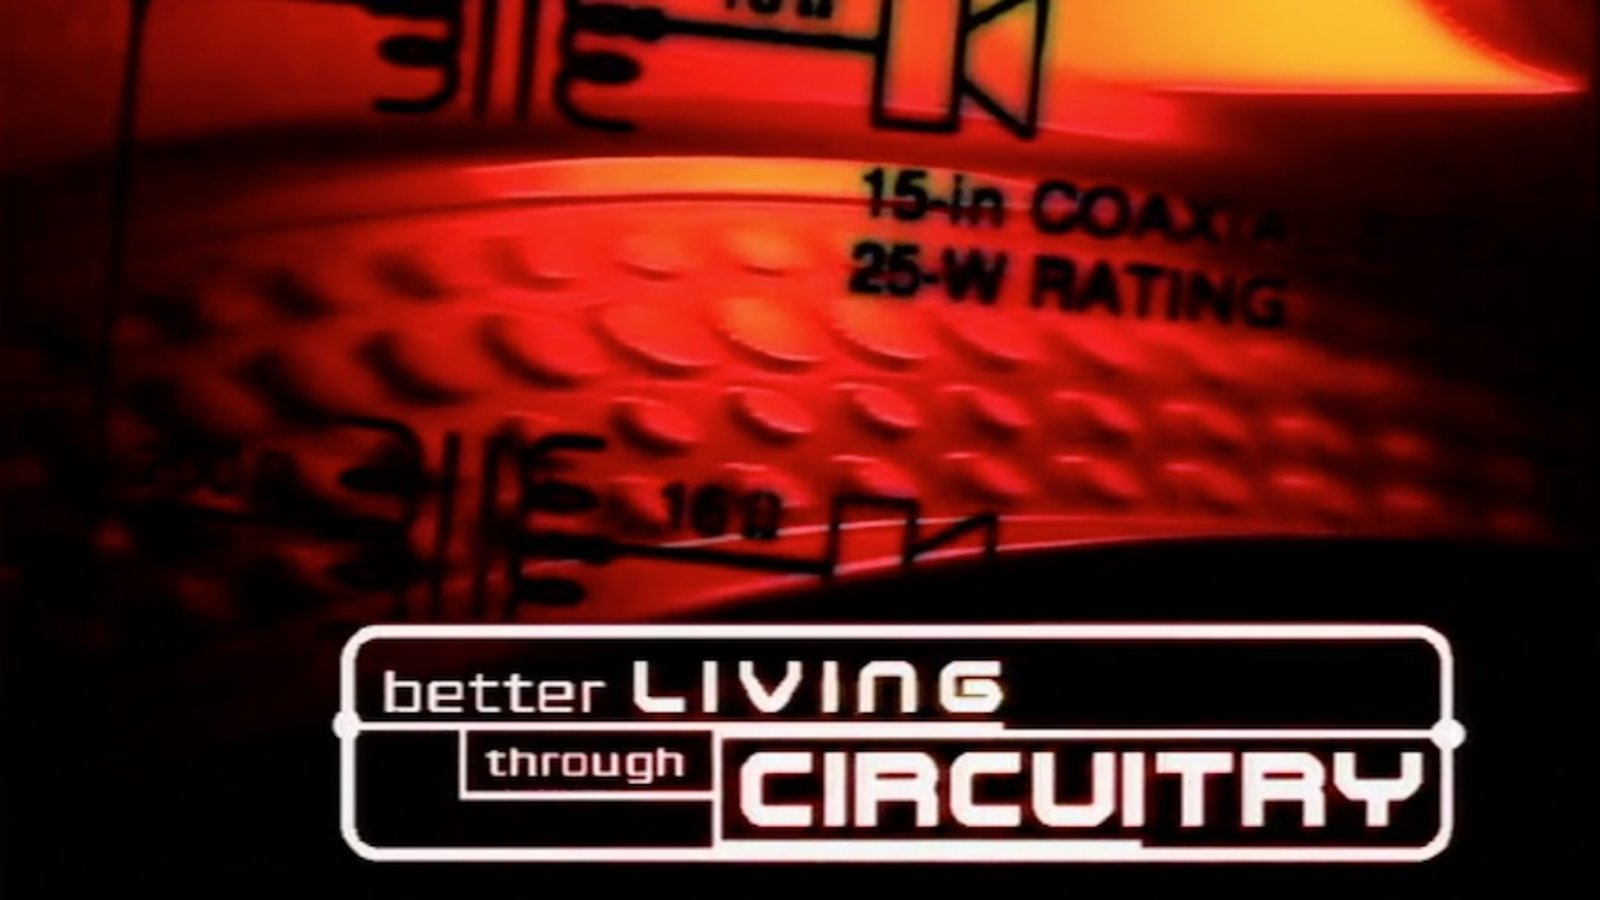 Better Living Through Circuitry - Rave Club Culture